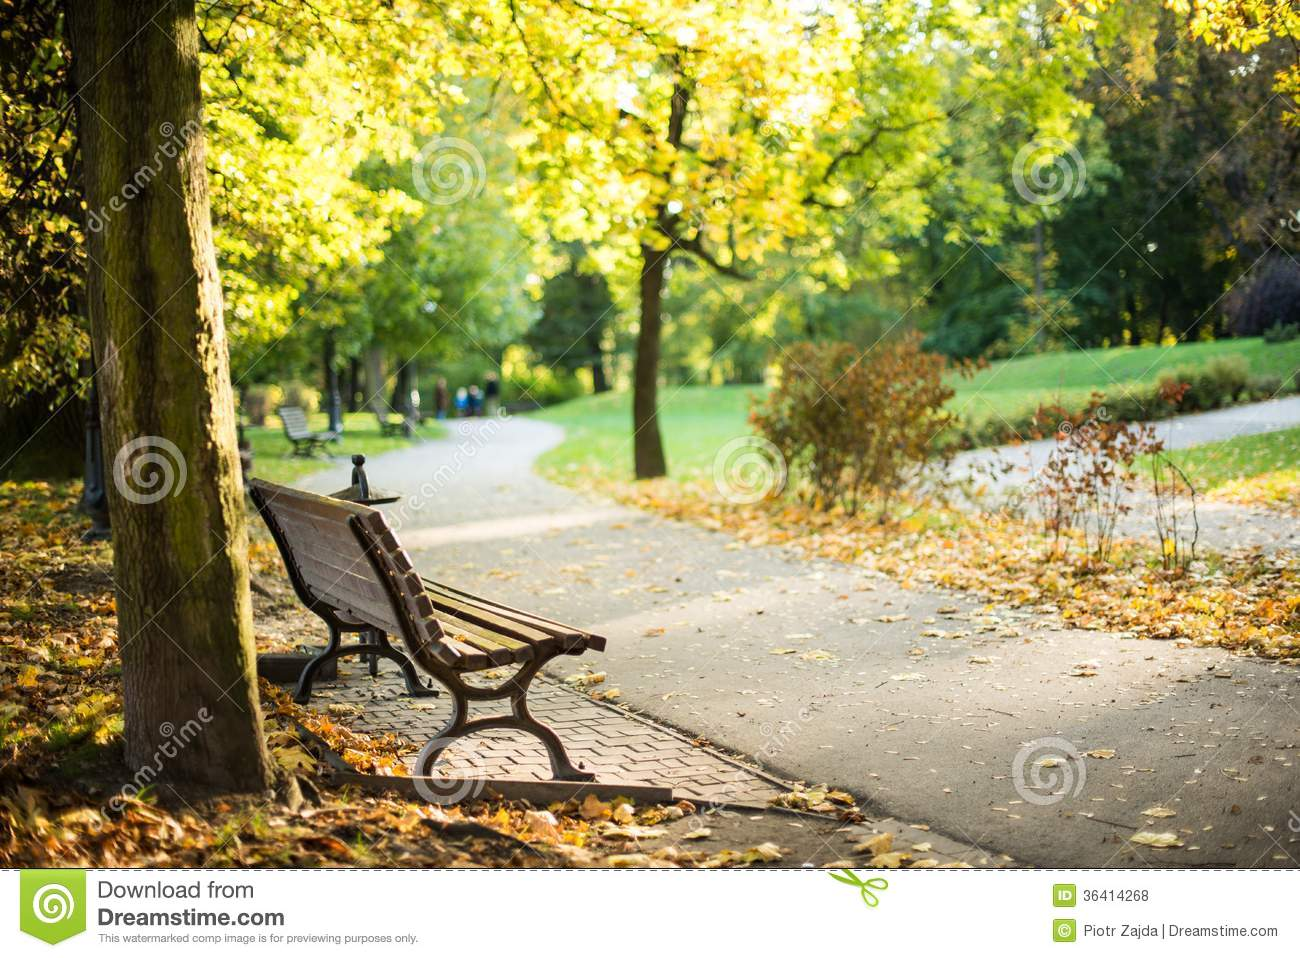 Bench in the Park in Summer Time. One Silent and Peaceful Place.